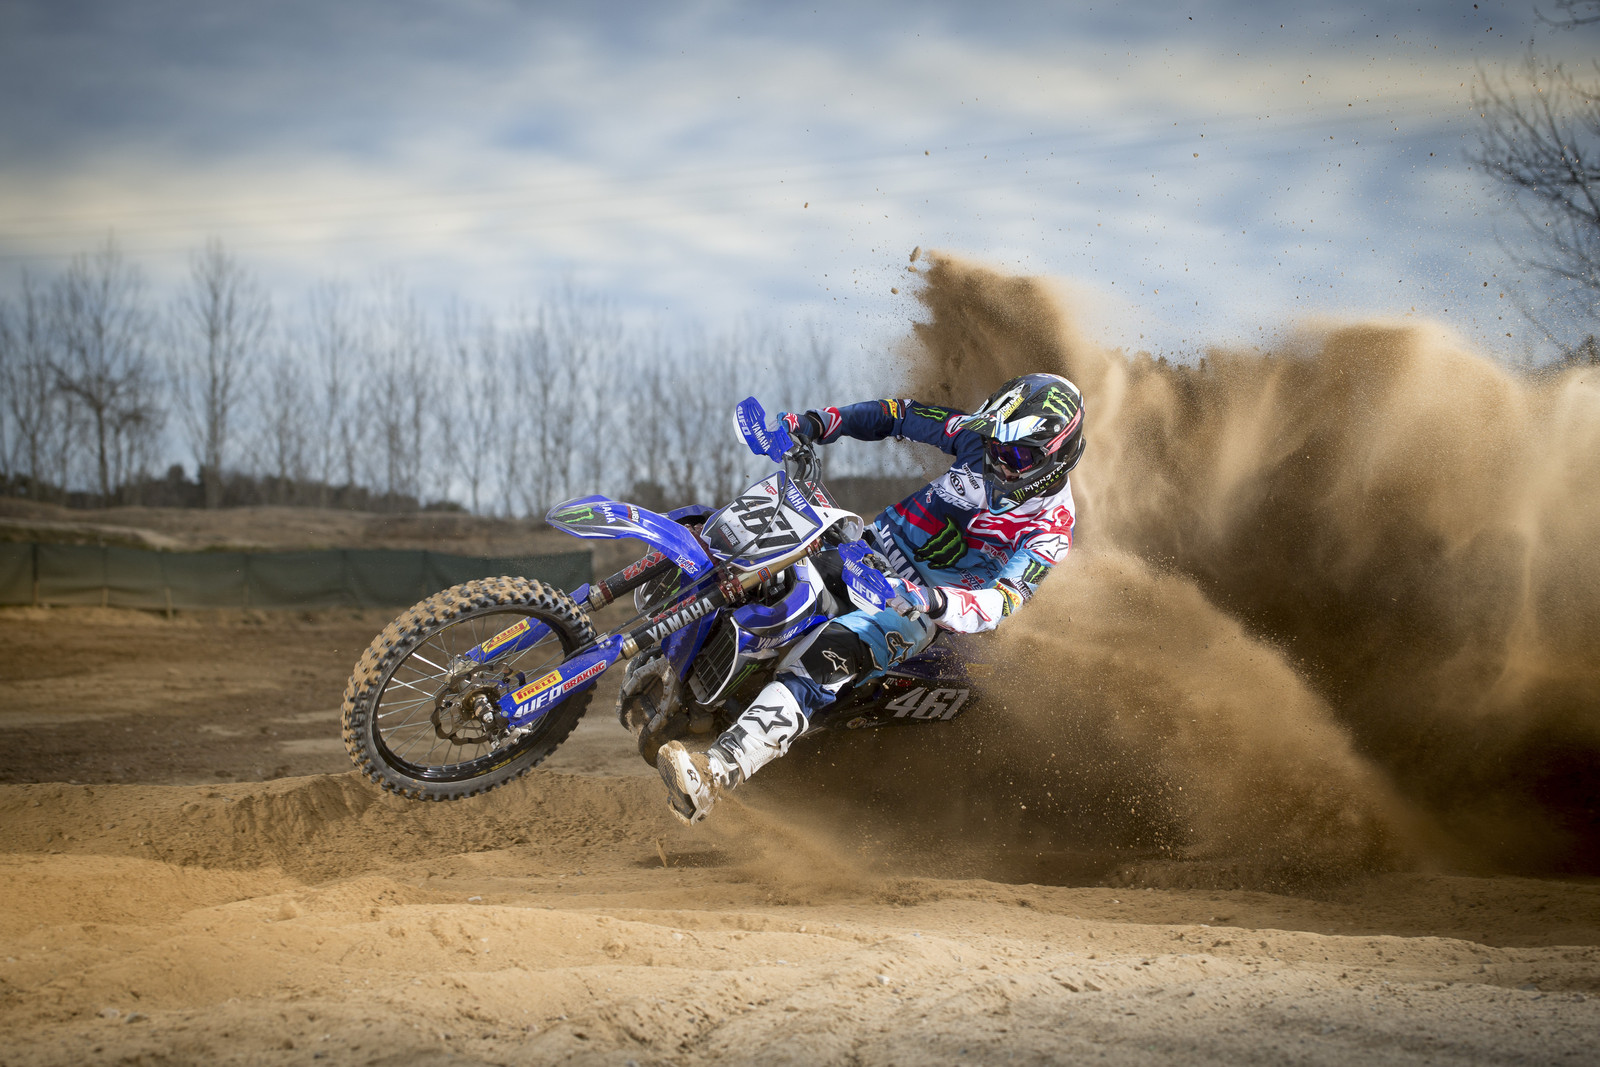 Romain Febvre - First Look: 2016 Monster Energy Yamaha YZ450FM - Motocross Pictures - Vital MX